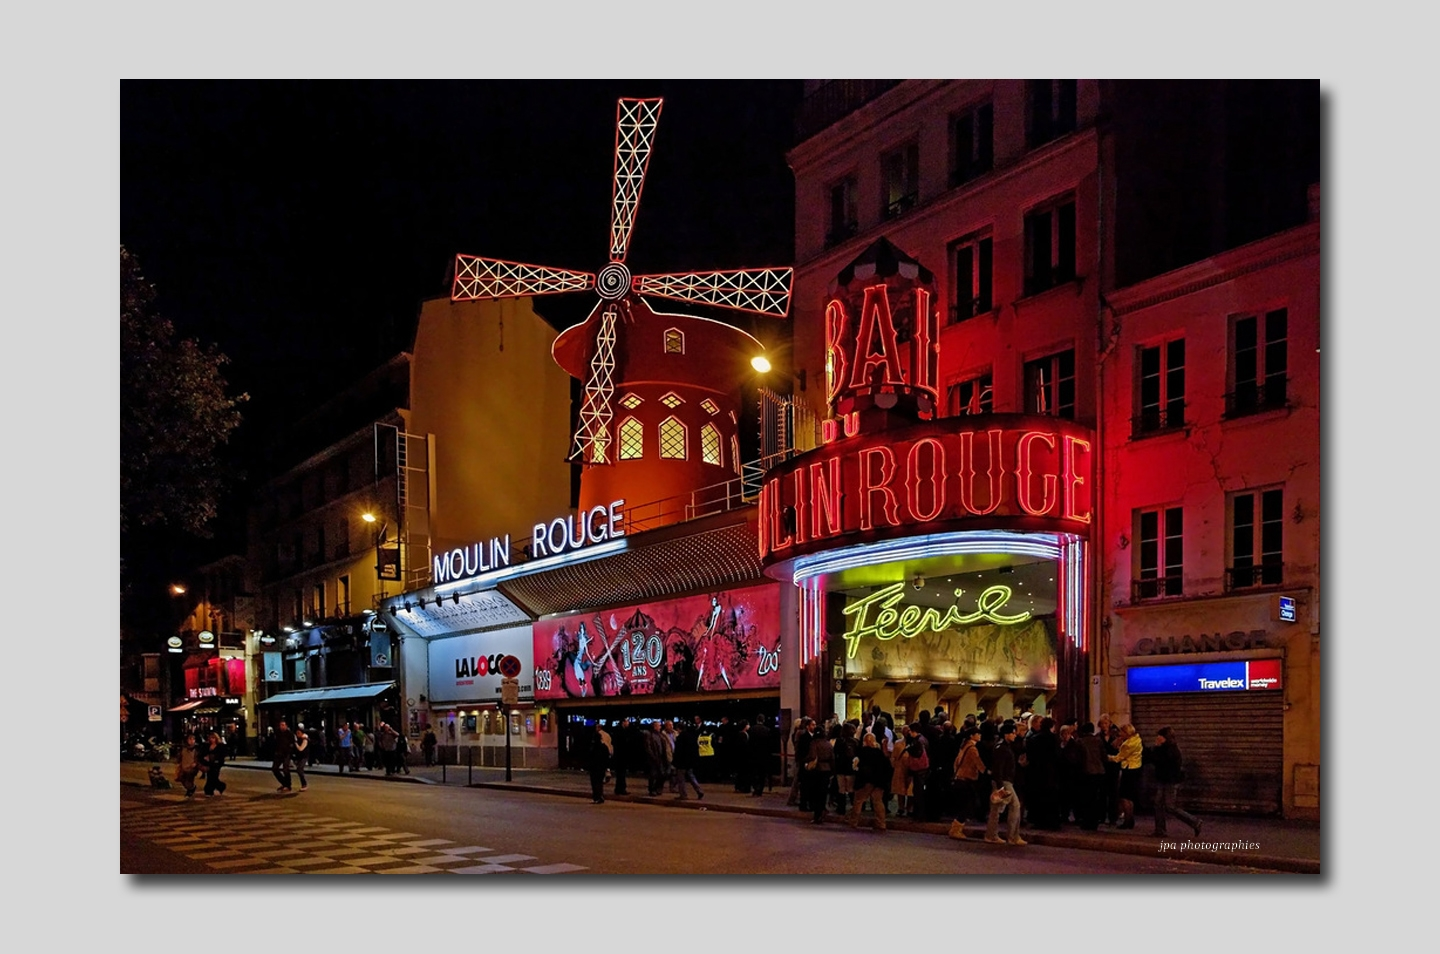 Montmartre Le Moulin Rouge